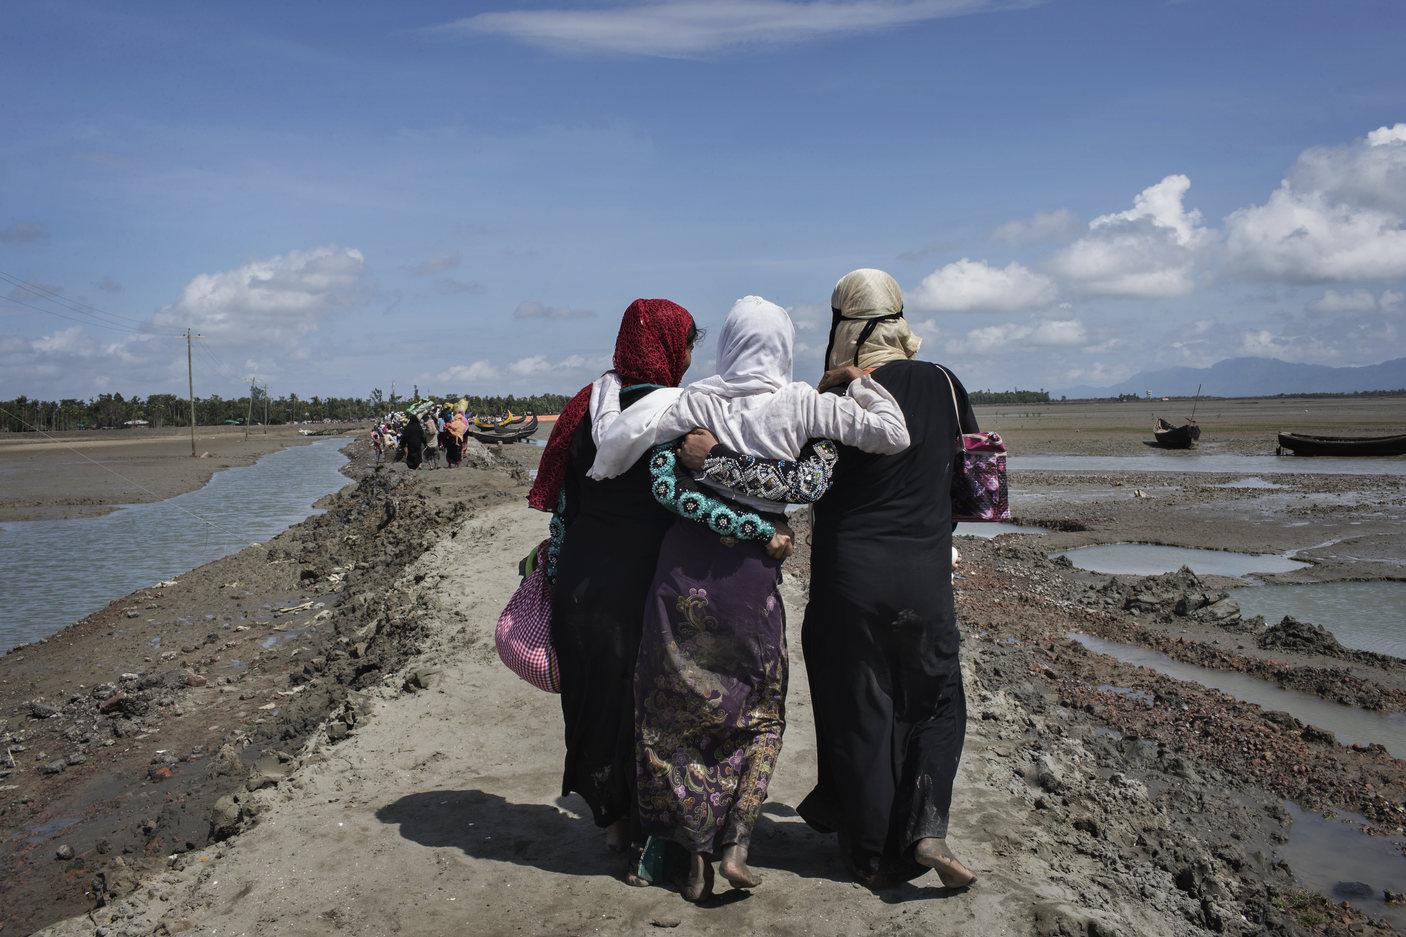 Rohingya women refugees who crossed the Naf River from Burma into Bangladesh continue inland toward refugee camps.